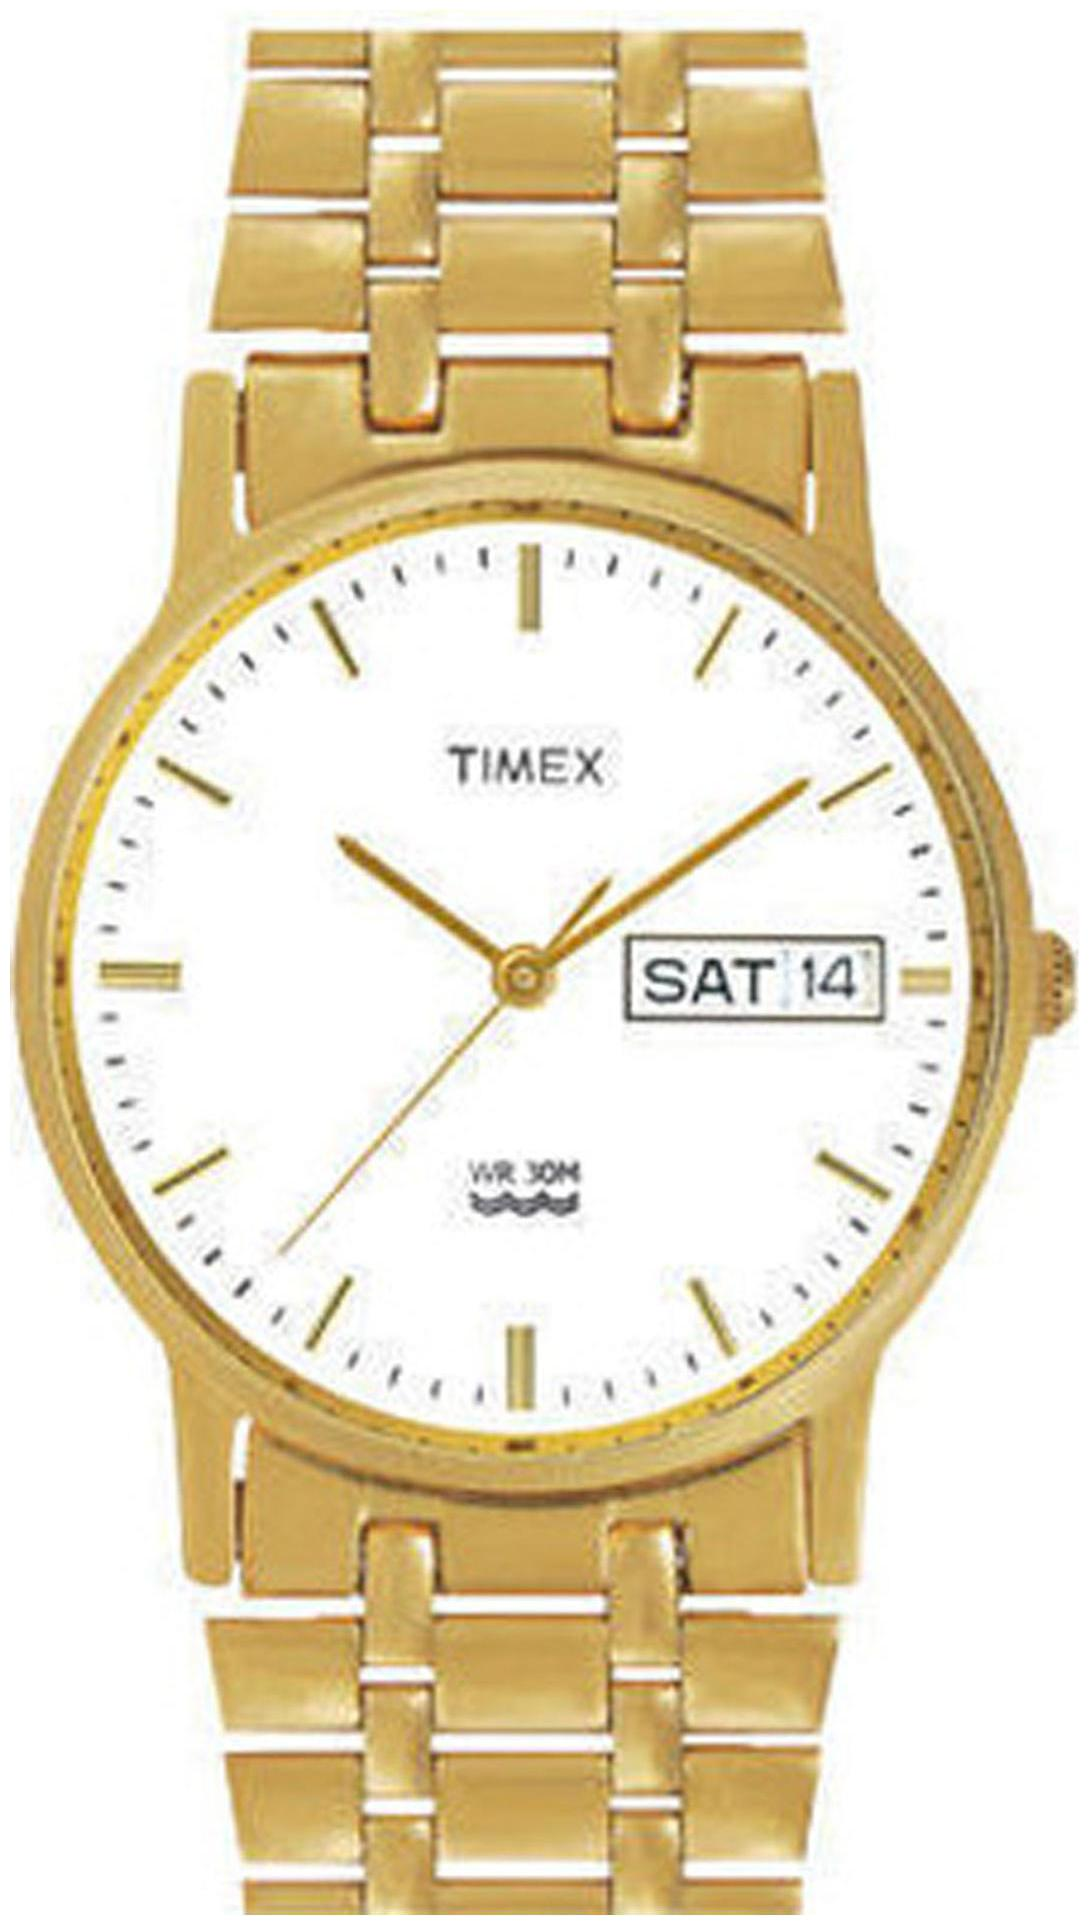 Timex Classics Analog White Dial Men's Watch   A503